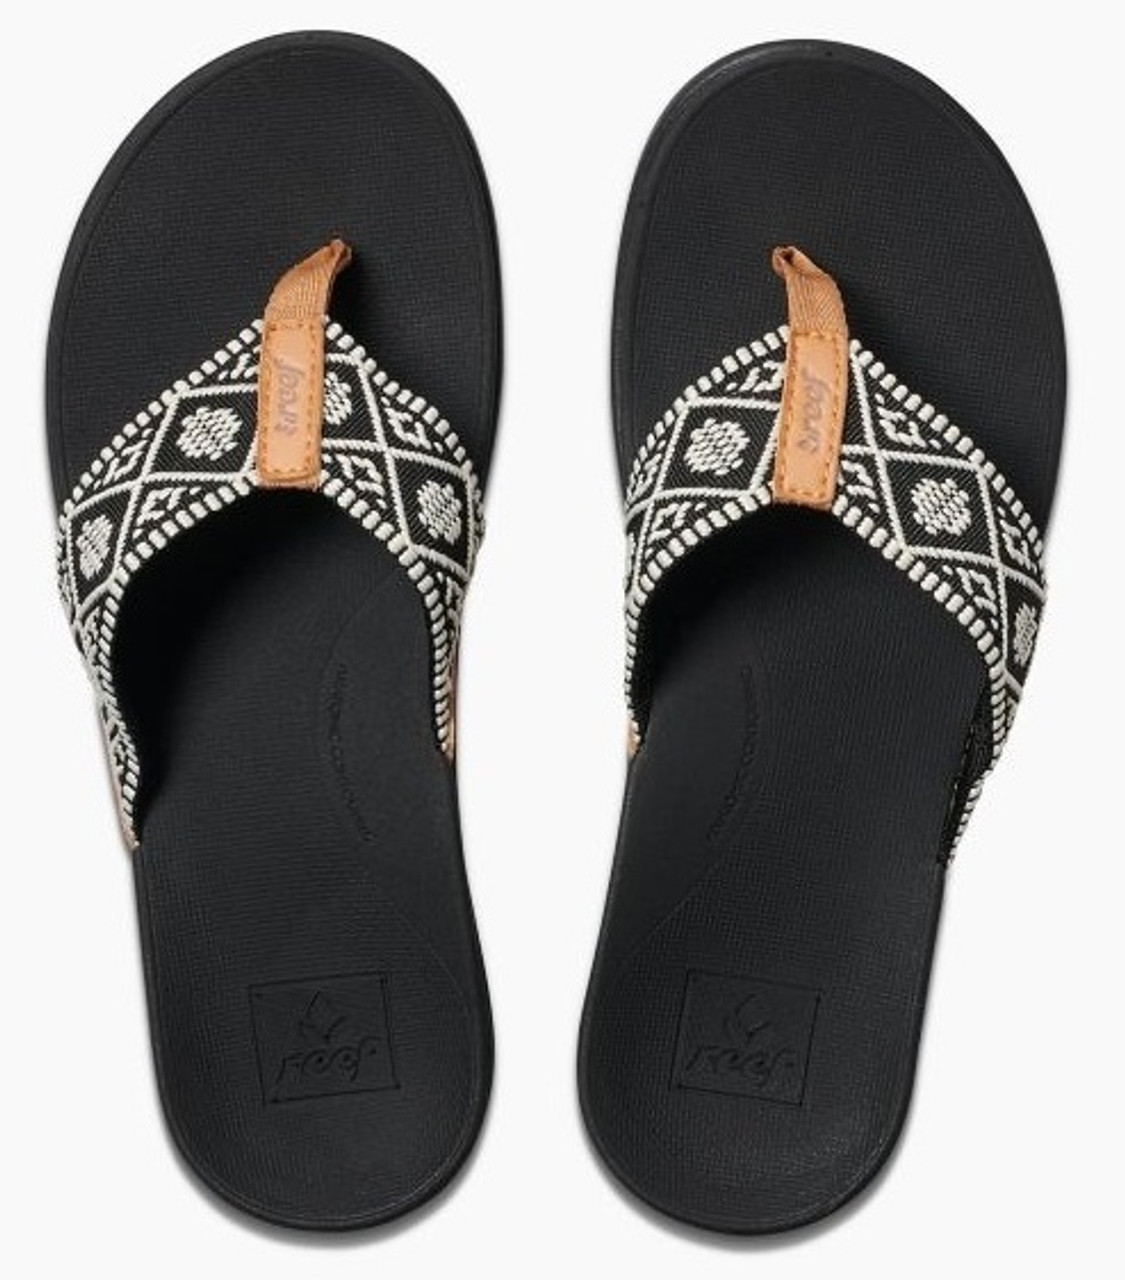 Women's Reef Sandals Flip Flops - Ortho Woven - Black/White - RF0A3VDNBLW